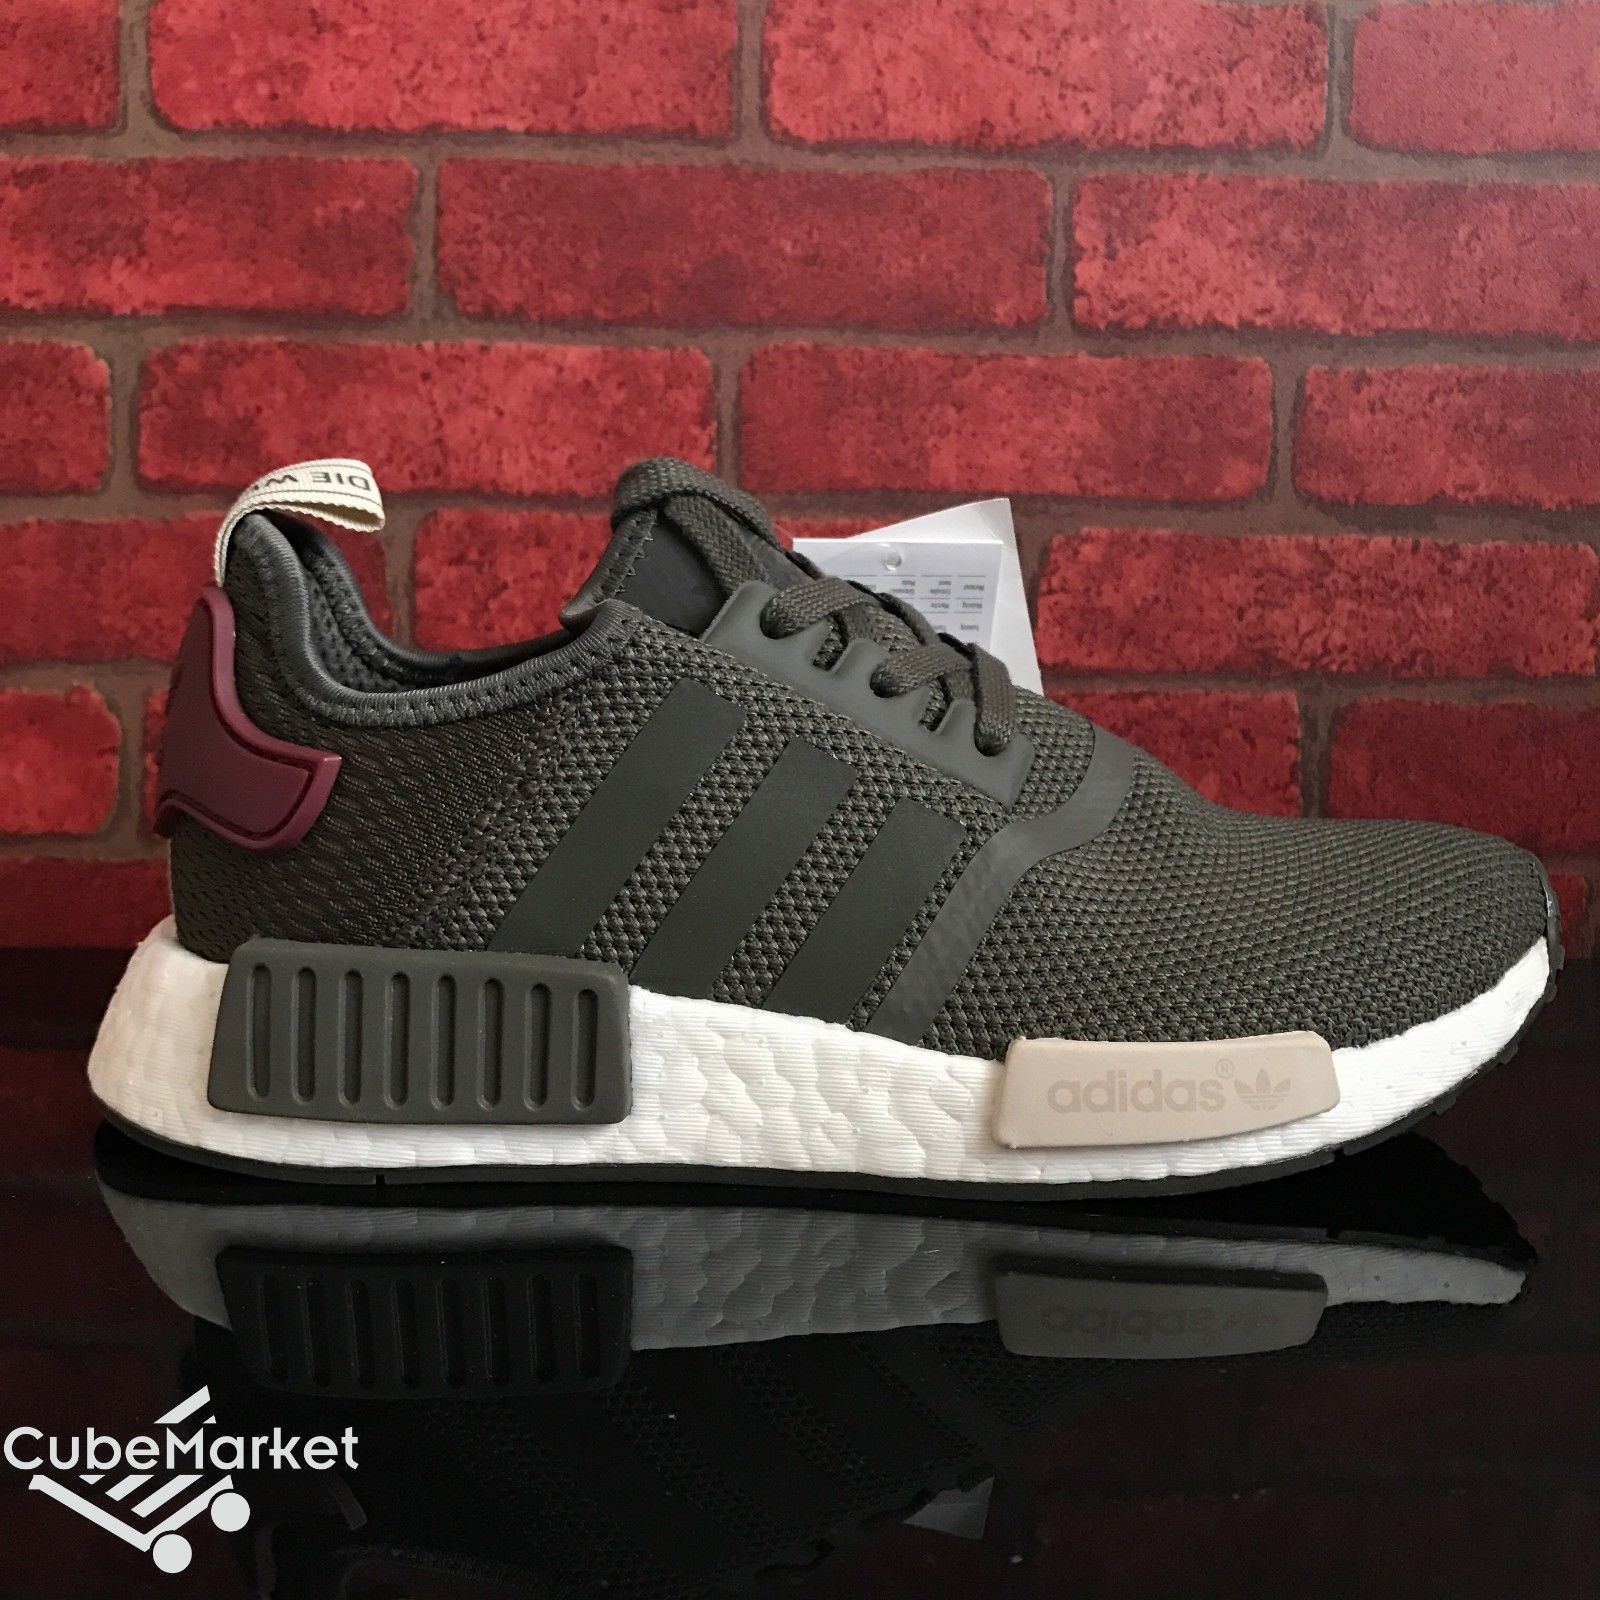 Adidas NMD R1 Runner Womens Utility Grey Olive Maroon BA7752 Size 5-9.5